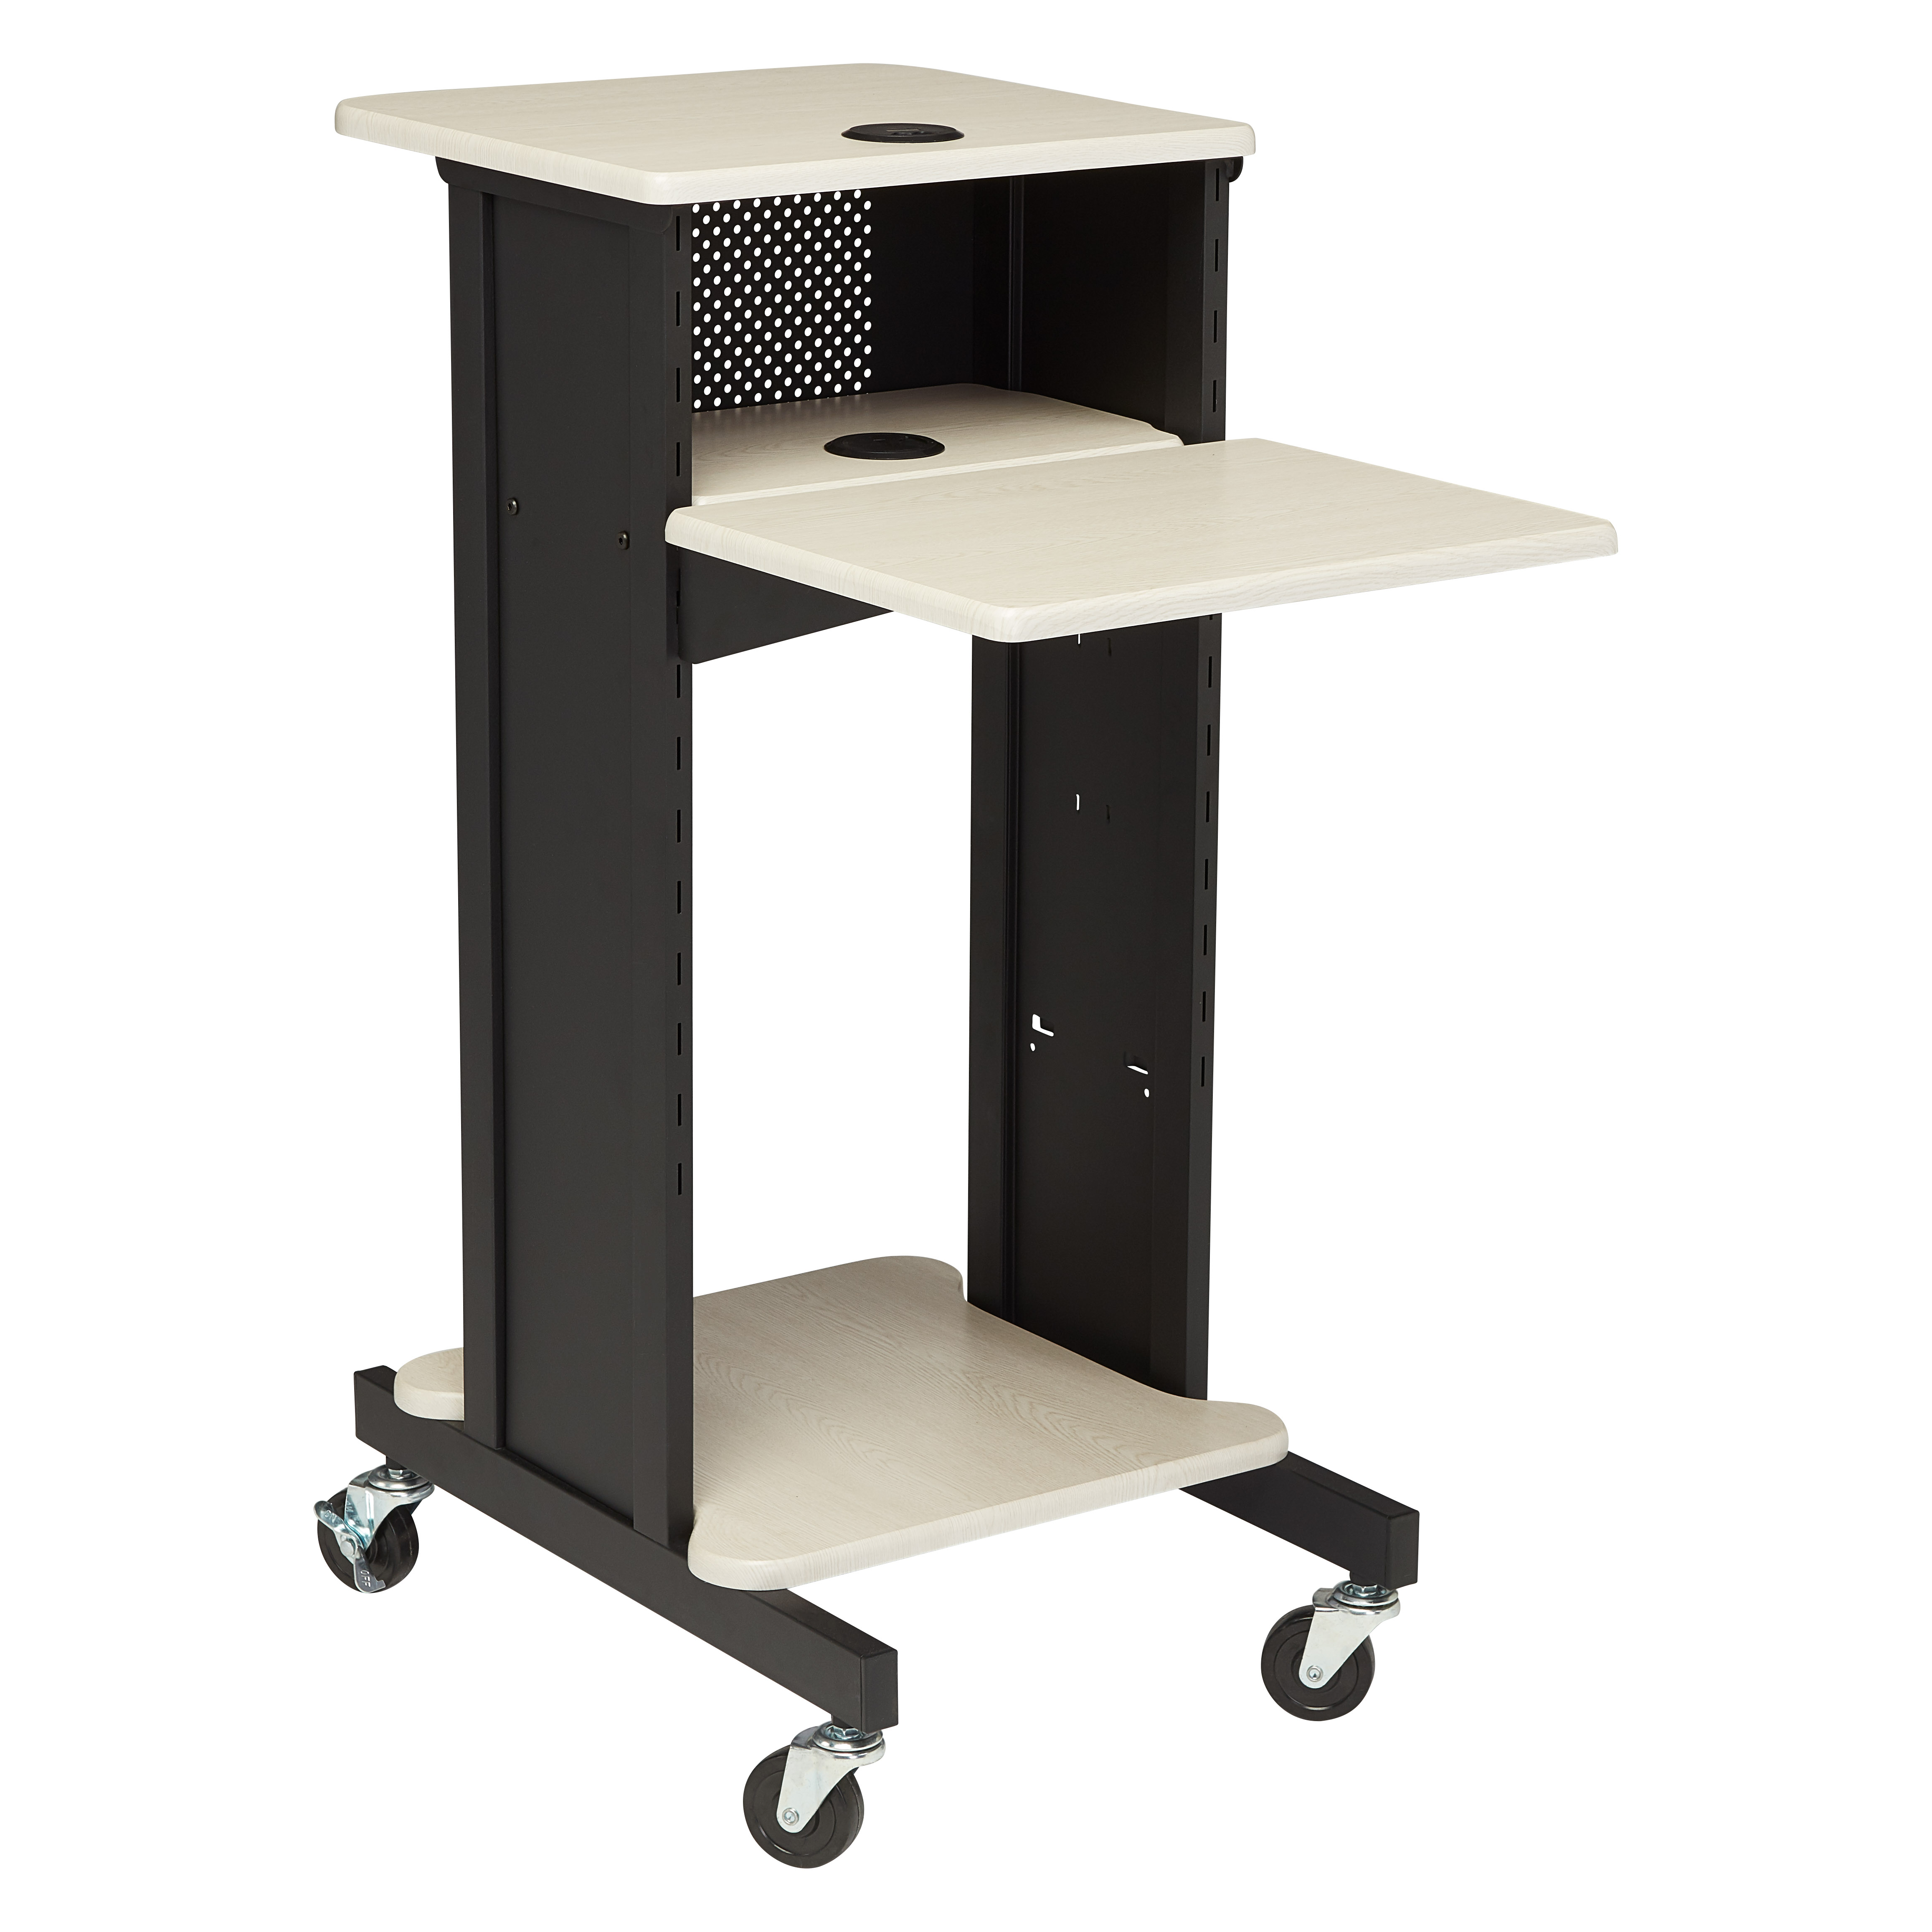 Premium Presentation Cart with Wire Management & 6-Outlet Power Strip